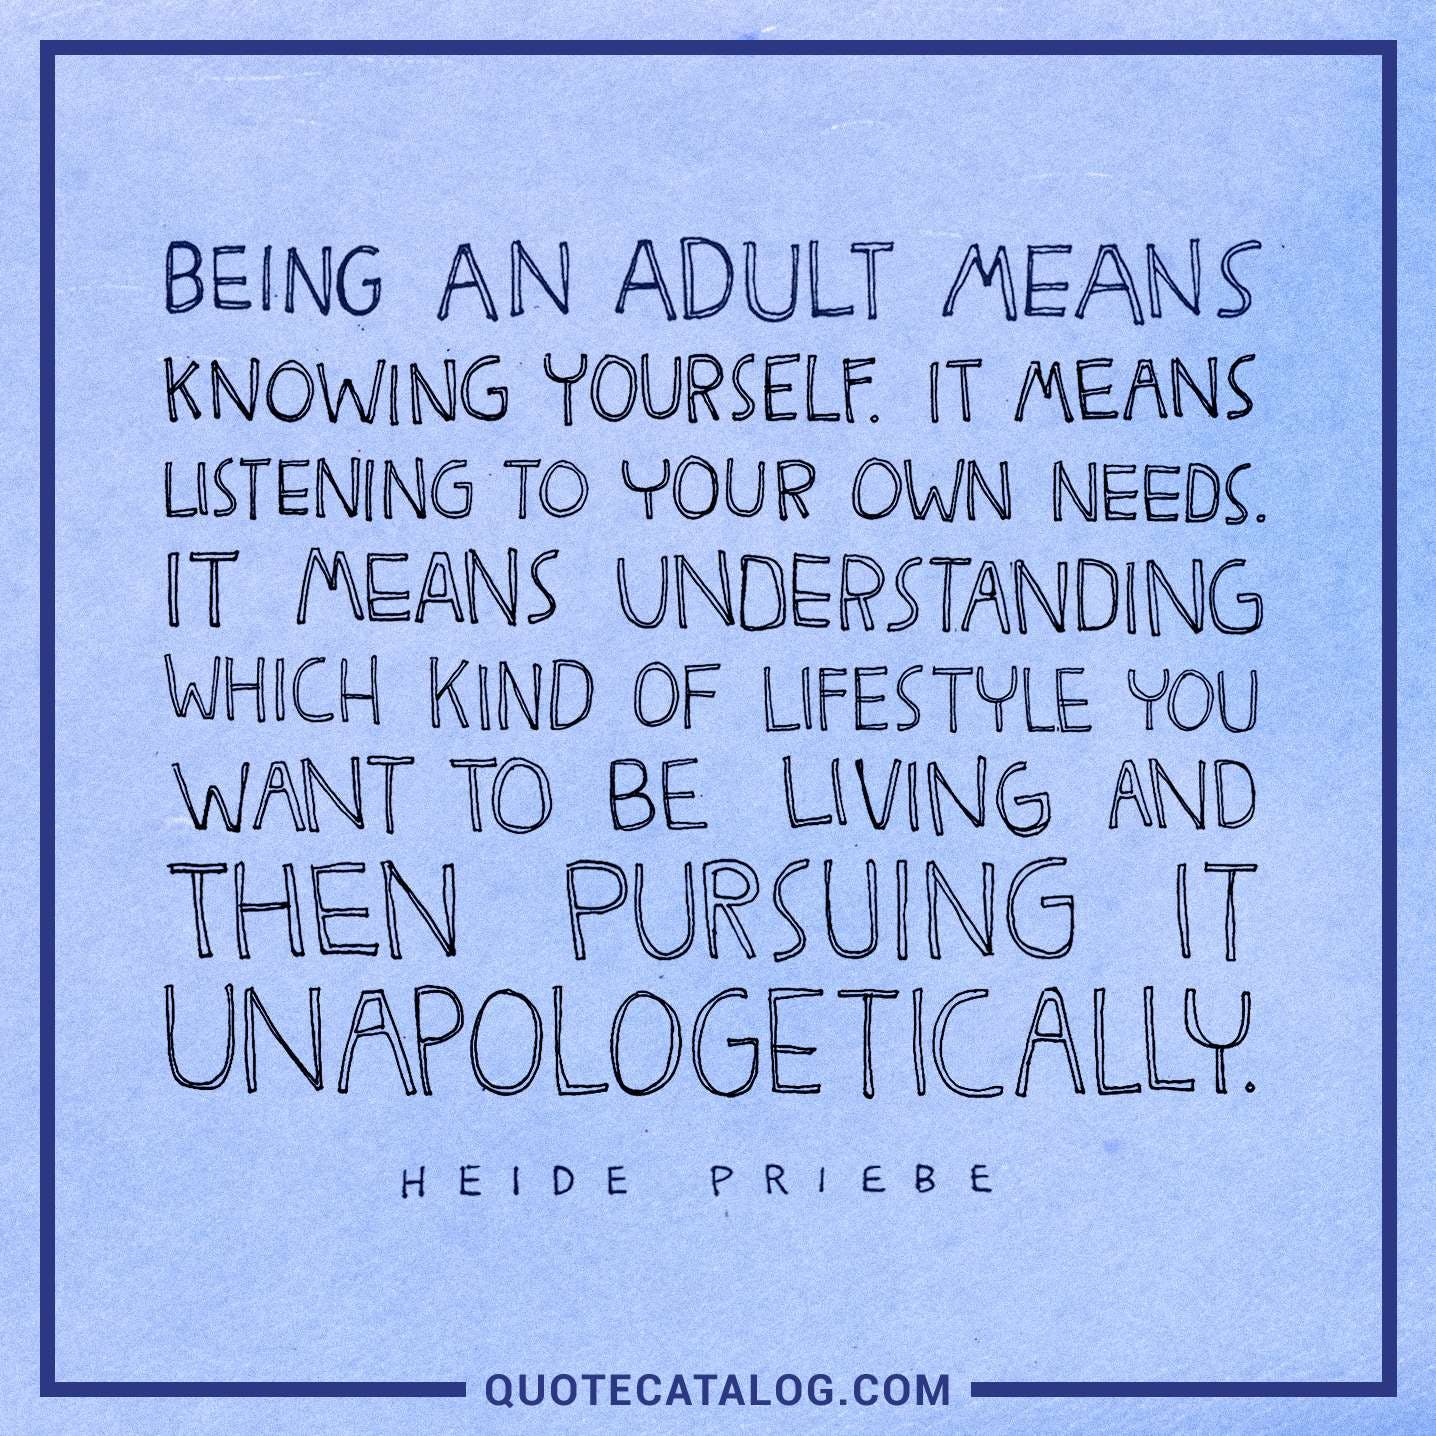 Being an adult means knowing yourself. It means listening to your own needs. It means understanding which kind of lifestyle you want to be living and then pursuing it unapologetically.